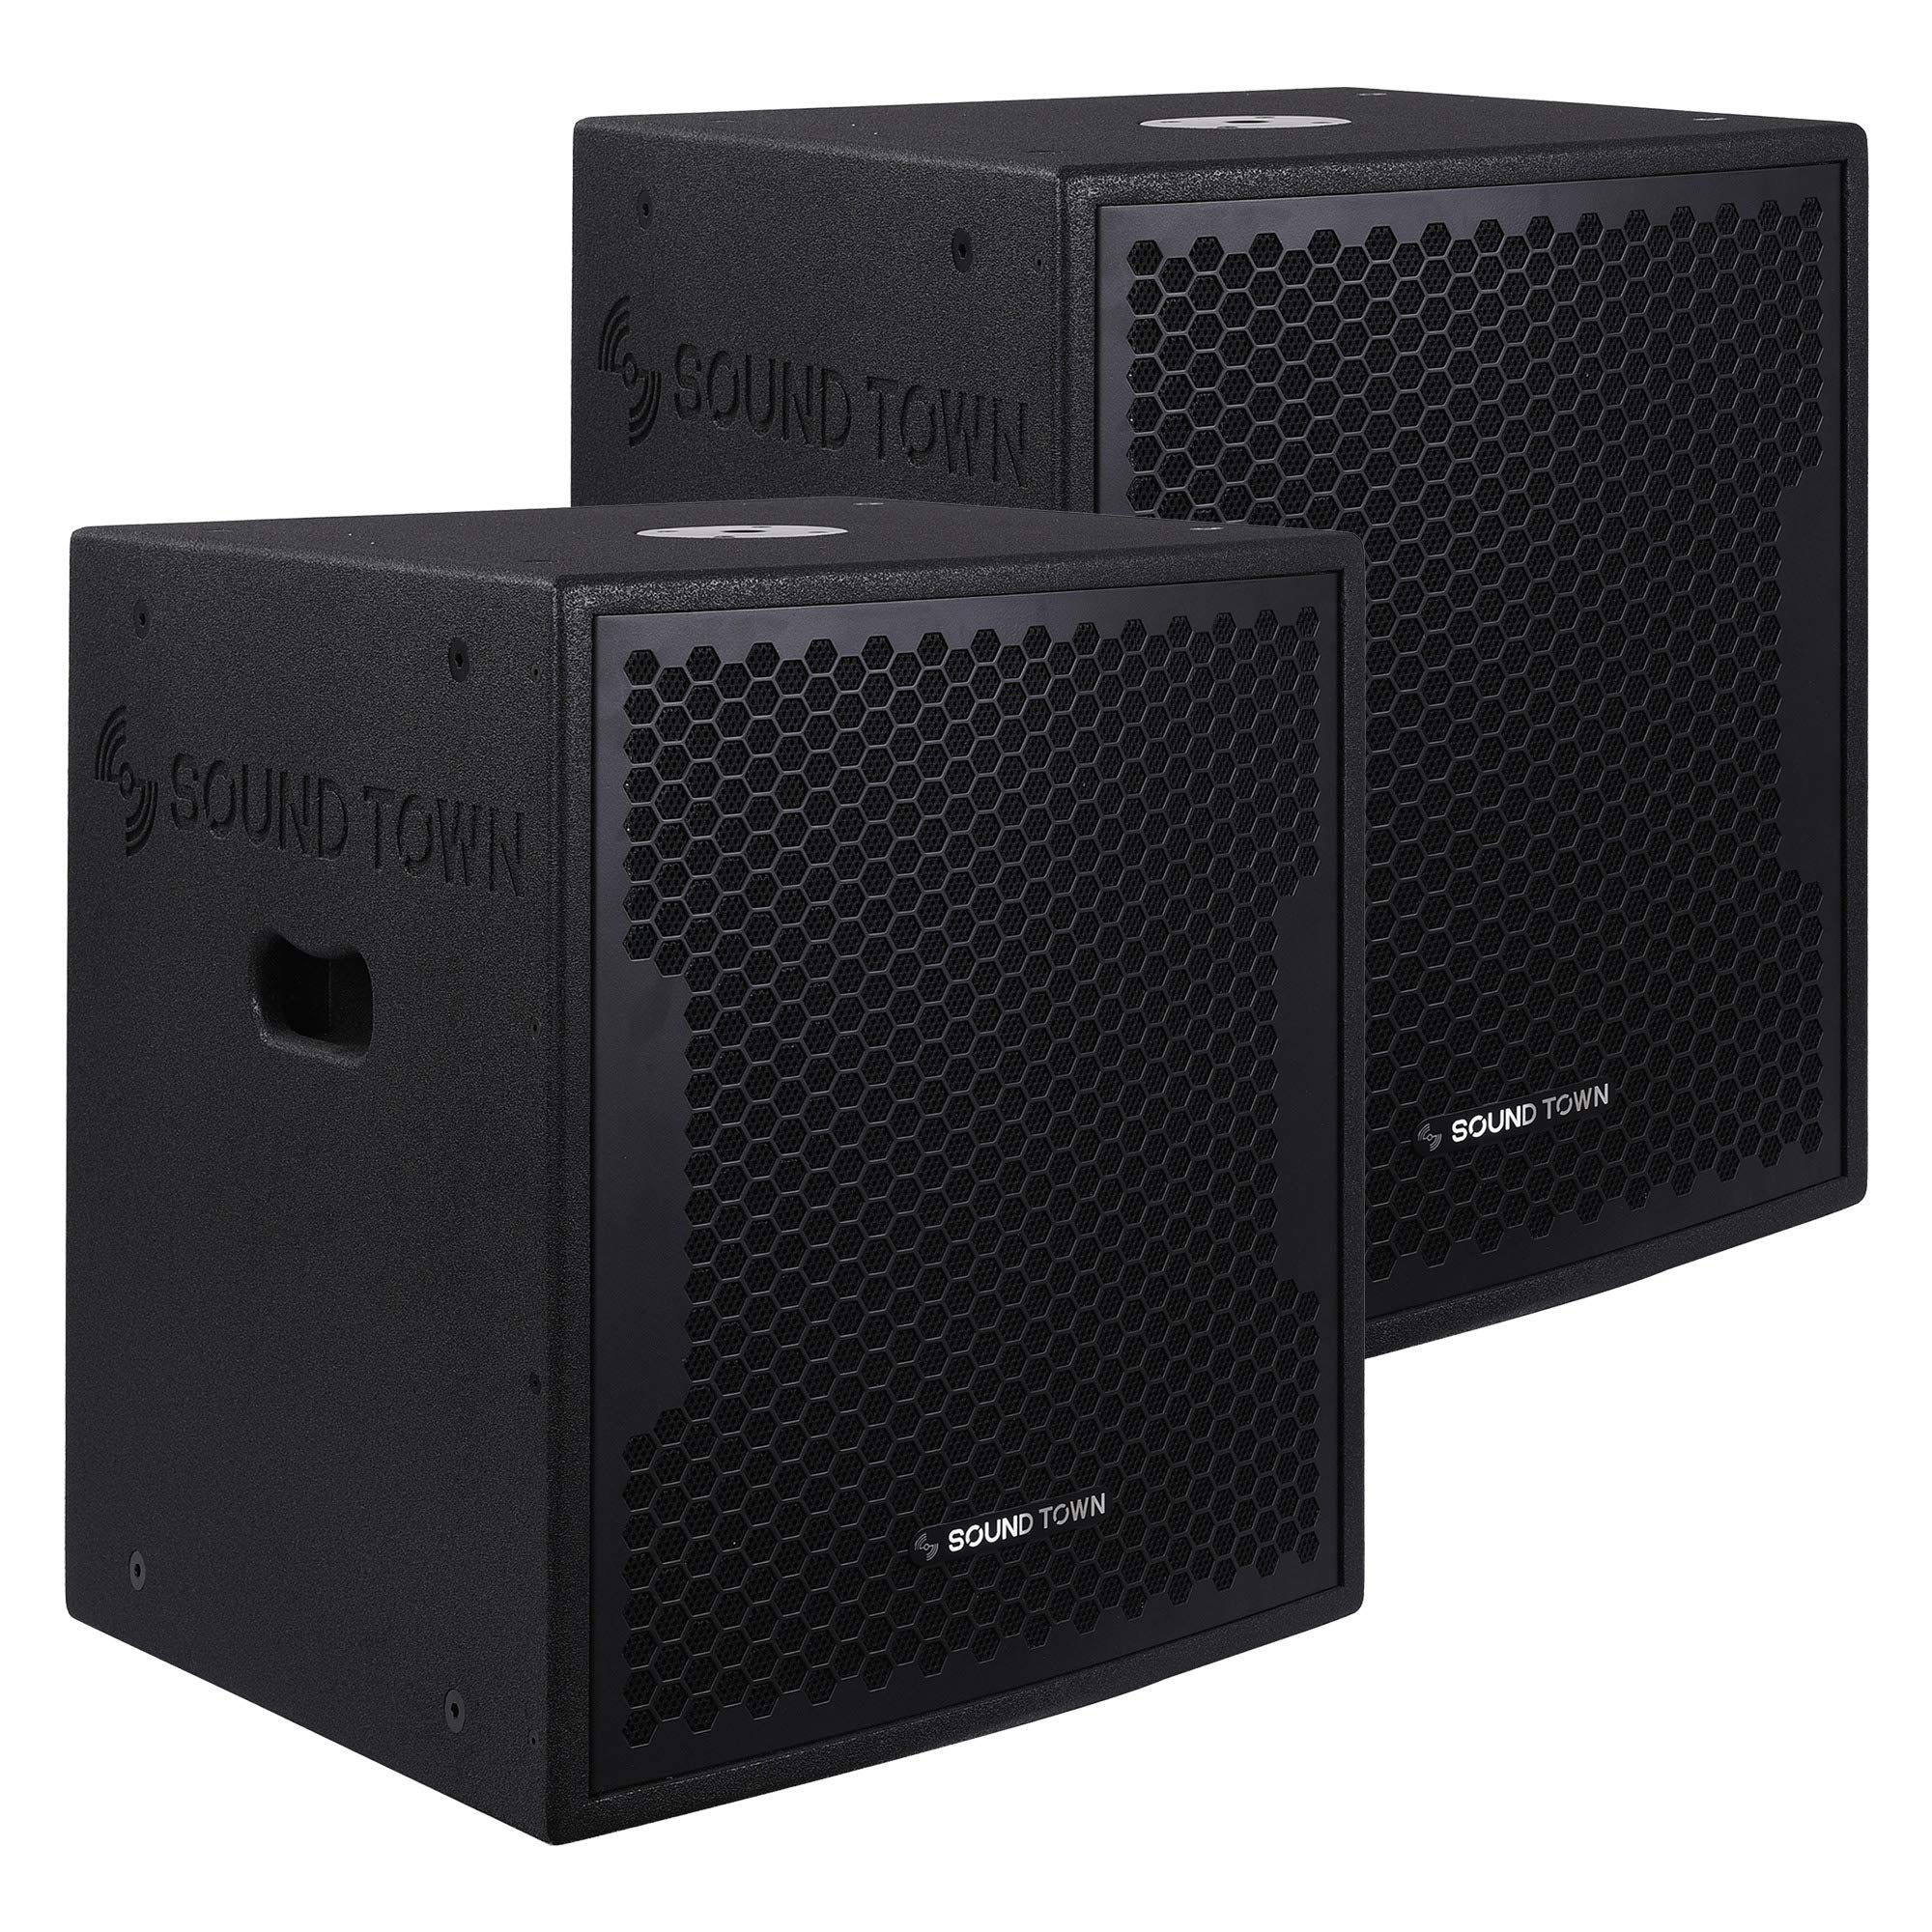 Sound Town 2-Pack 15'' 1000 Watts Powered PA DJ Subwoofers with DSP and Plywood Enclosure, Black (CARME-15SPW-PAIR) by Sound Town